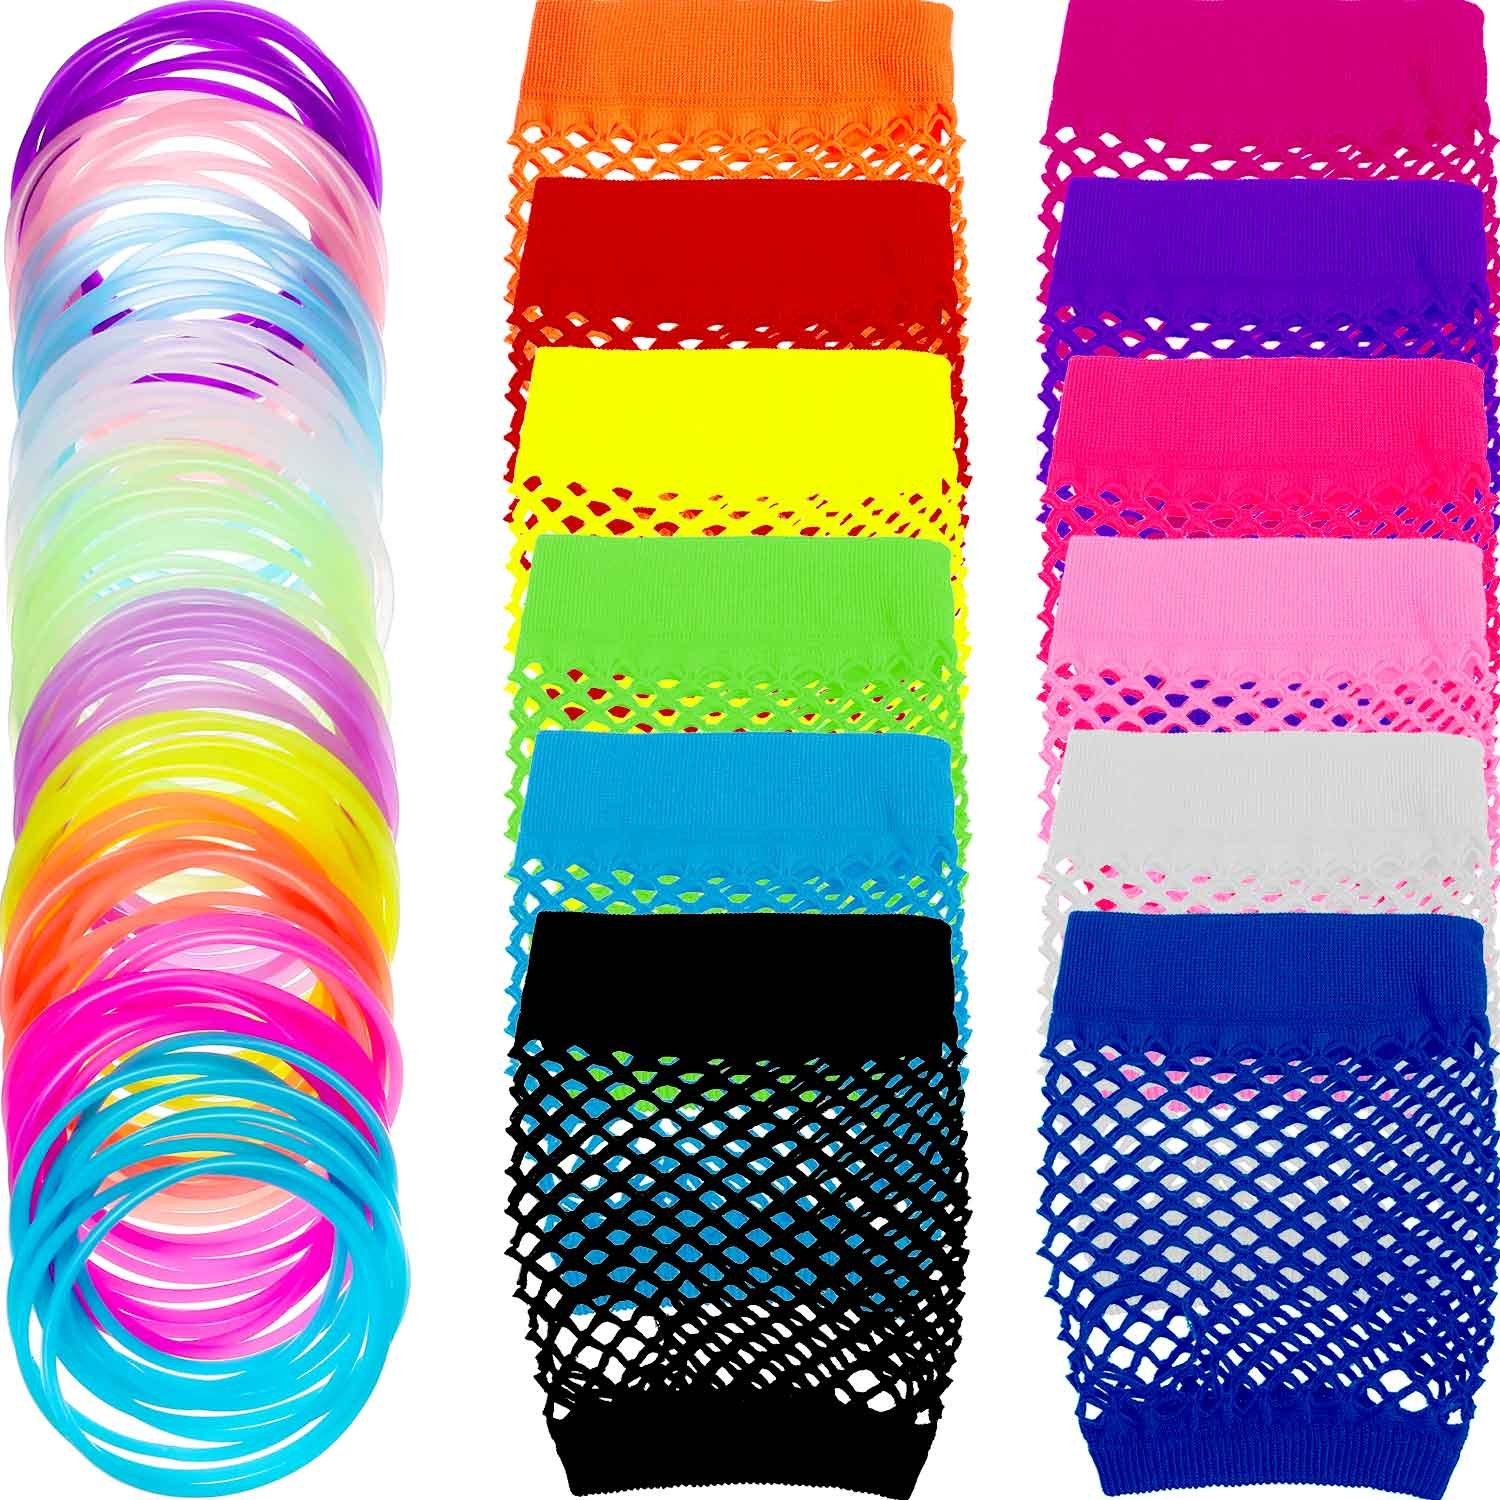 TecUnite 12 Pairs Neon Colored Fingerless Fishnet Gloves and 100 Pieces Multicolor Silicone Jelly Bracelets Luminous Hair Ties for Various Theme Parties